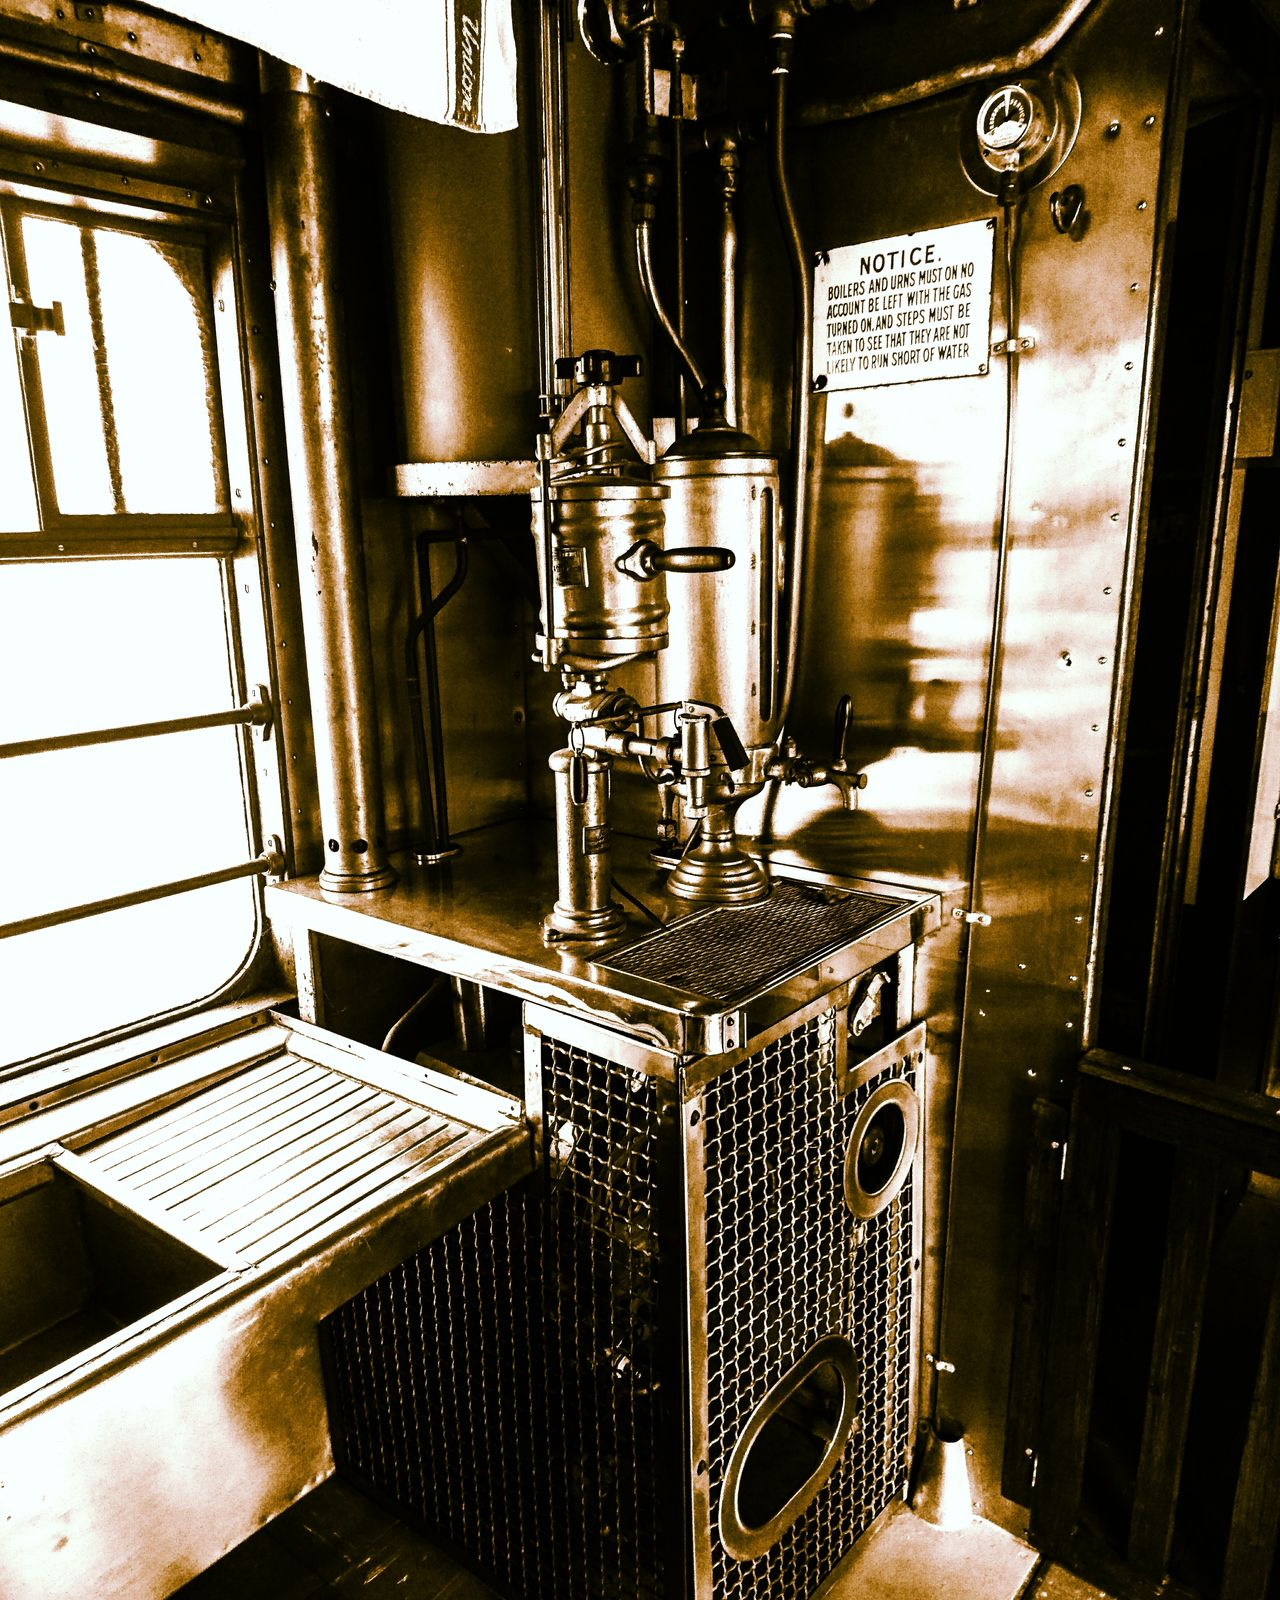 Monochrome Kitchen Galley Boiler Train Steamtrain Metal Reflection Pressure Gauge Sink Food Cooking PhonePhotography Me, My Camera And I Mobilephotography Food Preparation Shadow Steam Engine